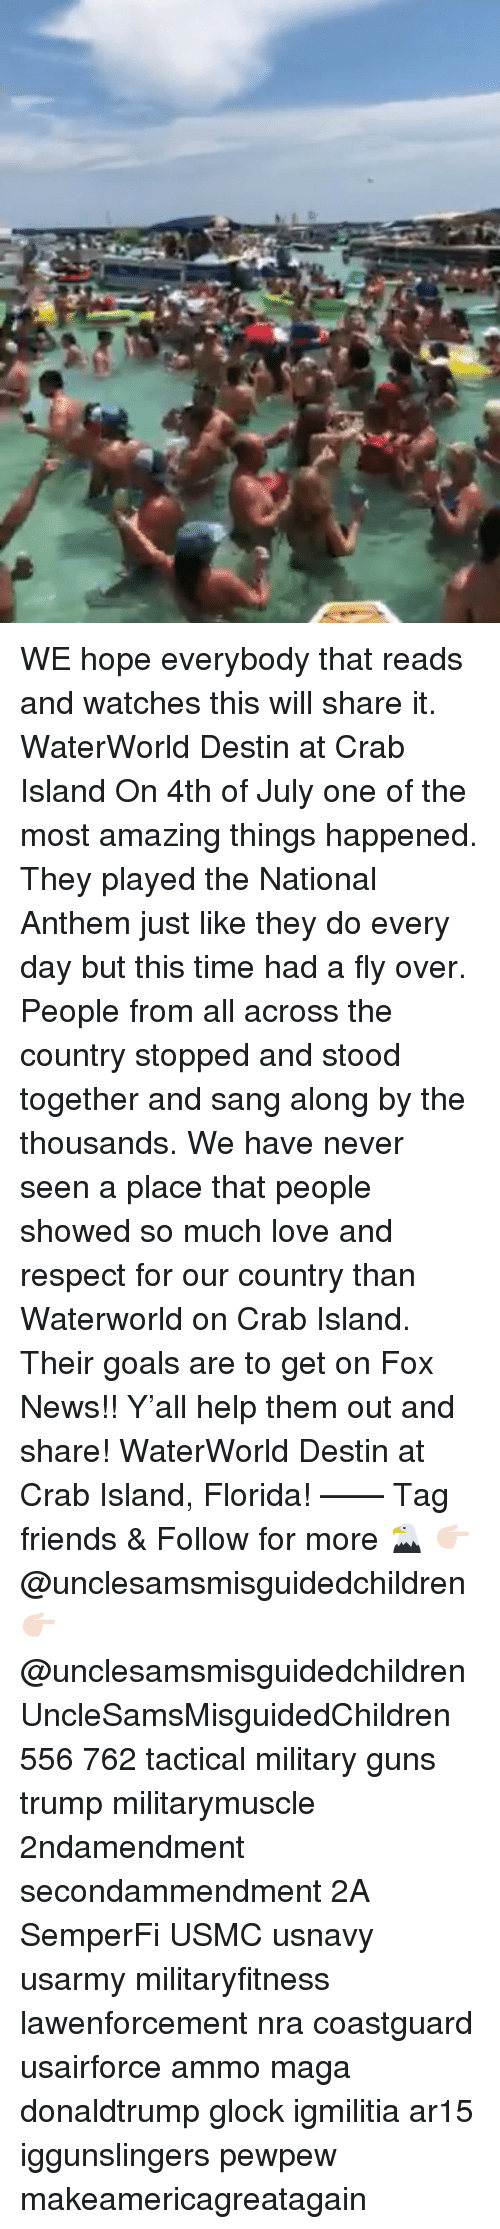 Ar15: WE hope everybody that reads and watches this will share it. WaterWorld Destin at Crab Island On 4th of July one of the most amazing things happened. They played the National Anthem just like they do every day but this time had a fly over. People from all across the country stopped and stood together and sang along by the thousands. We have never seen a place that people showed so much love and respect for our country than Waterworld on Crab Island. Their goals are to get on Fox News!! Y'all help them out and share! WaterWorld Destin at Crab Island, Florida! —— Tag friends & Follow for more 🦅 👉🏻 @unclesamsmisguidedchildren 👉🏻 @unclesamsmisguidedchildren UncleSamsMisguidedChildren 556 762 tactical military guns trump militarymuscle 2ndamendment secondammendment 2A SemperFi USMC usnavy usarmy militaryfitness lawenforcement nra coastguard usairforce ammo maga donaldtrump glock igmilitia ar15 iggunslingers pewpew makeamericagreatagain